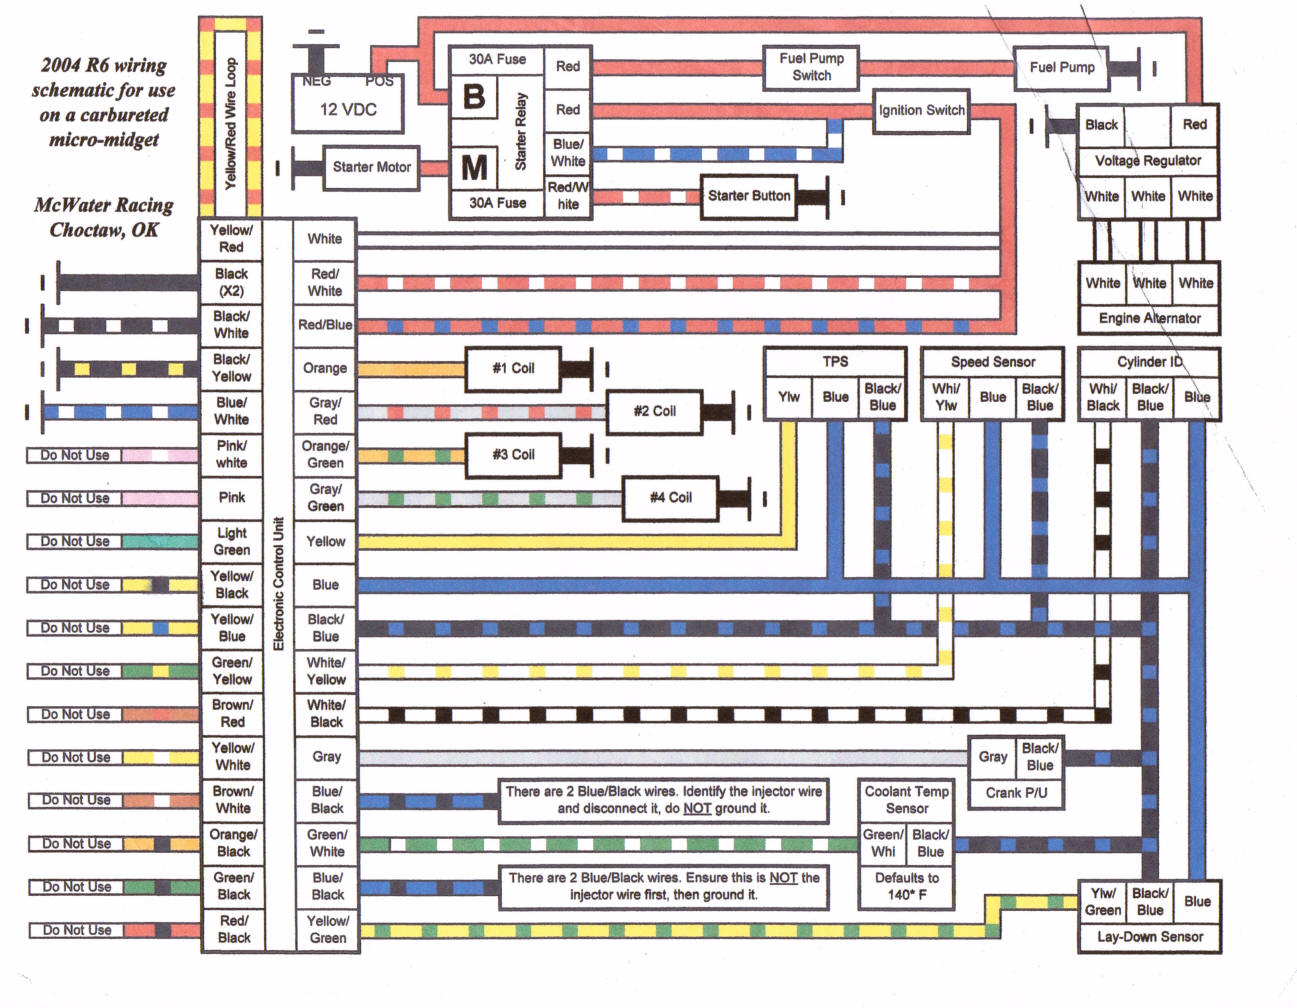 lc_3078] 2006 yamaha r1 wiring diagram  gritea epete pical clesi scoba mohammedshrine librar wiring 101